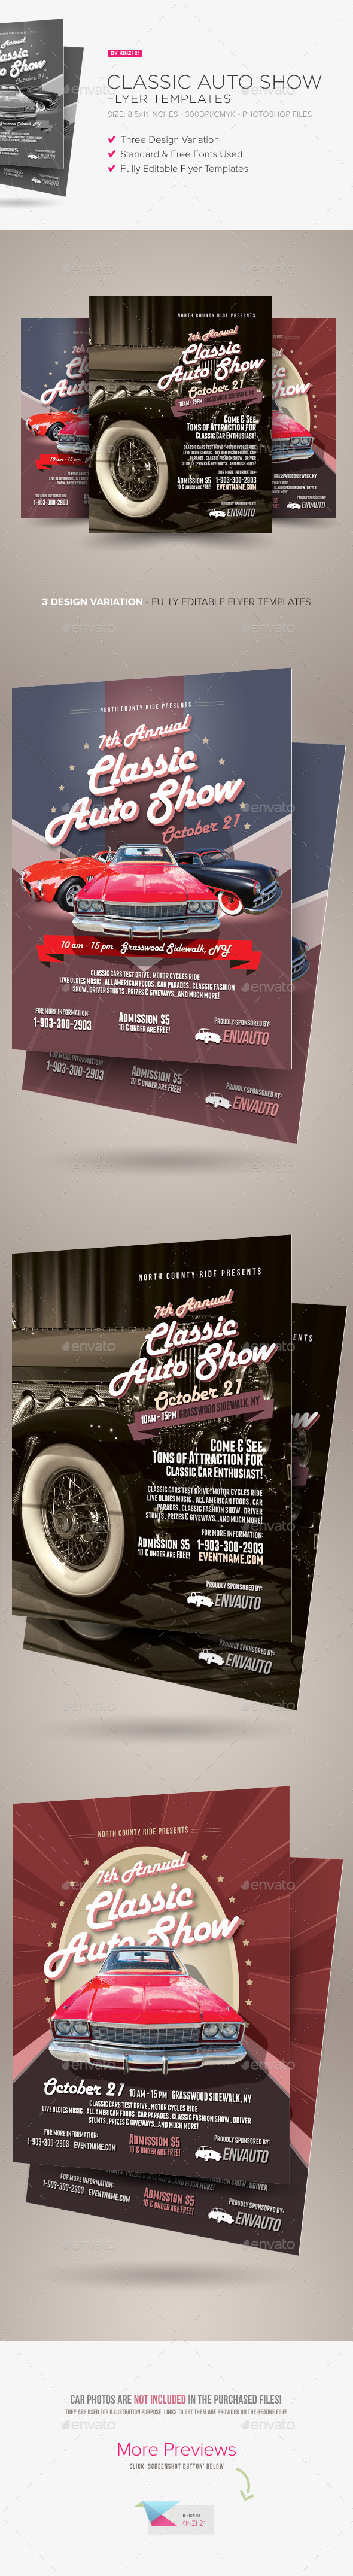 Car Show Flyer  Vintage  Classic By Nathan Knight Design On